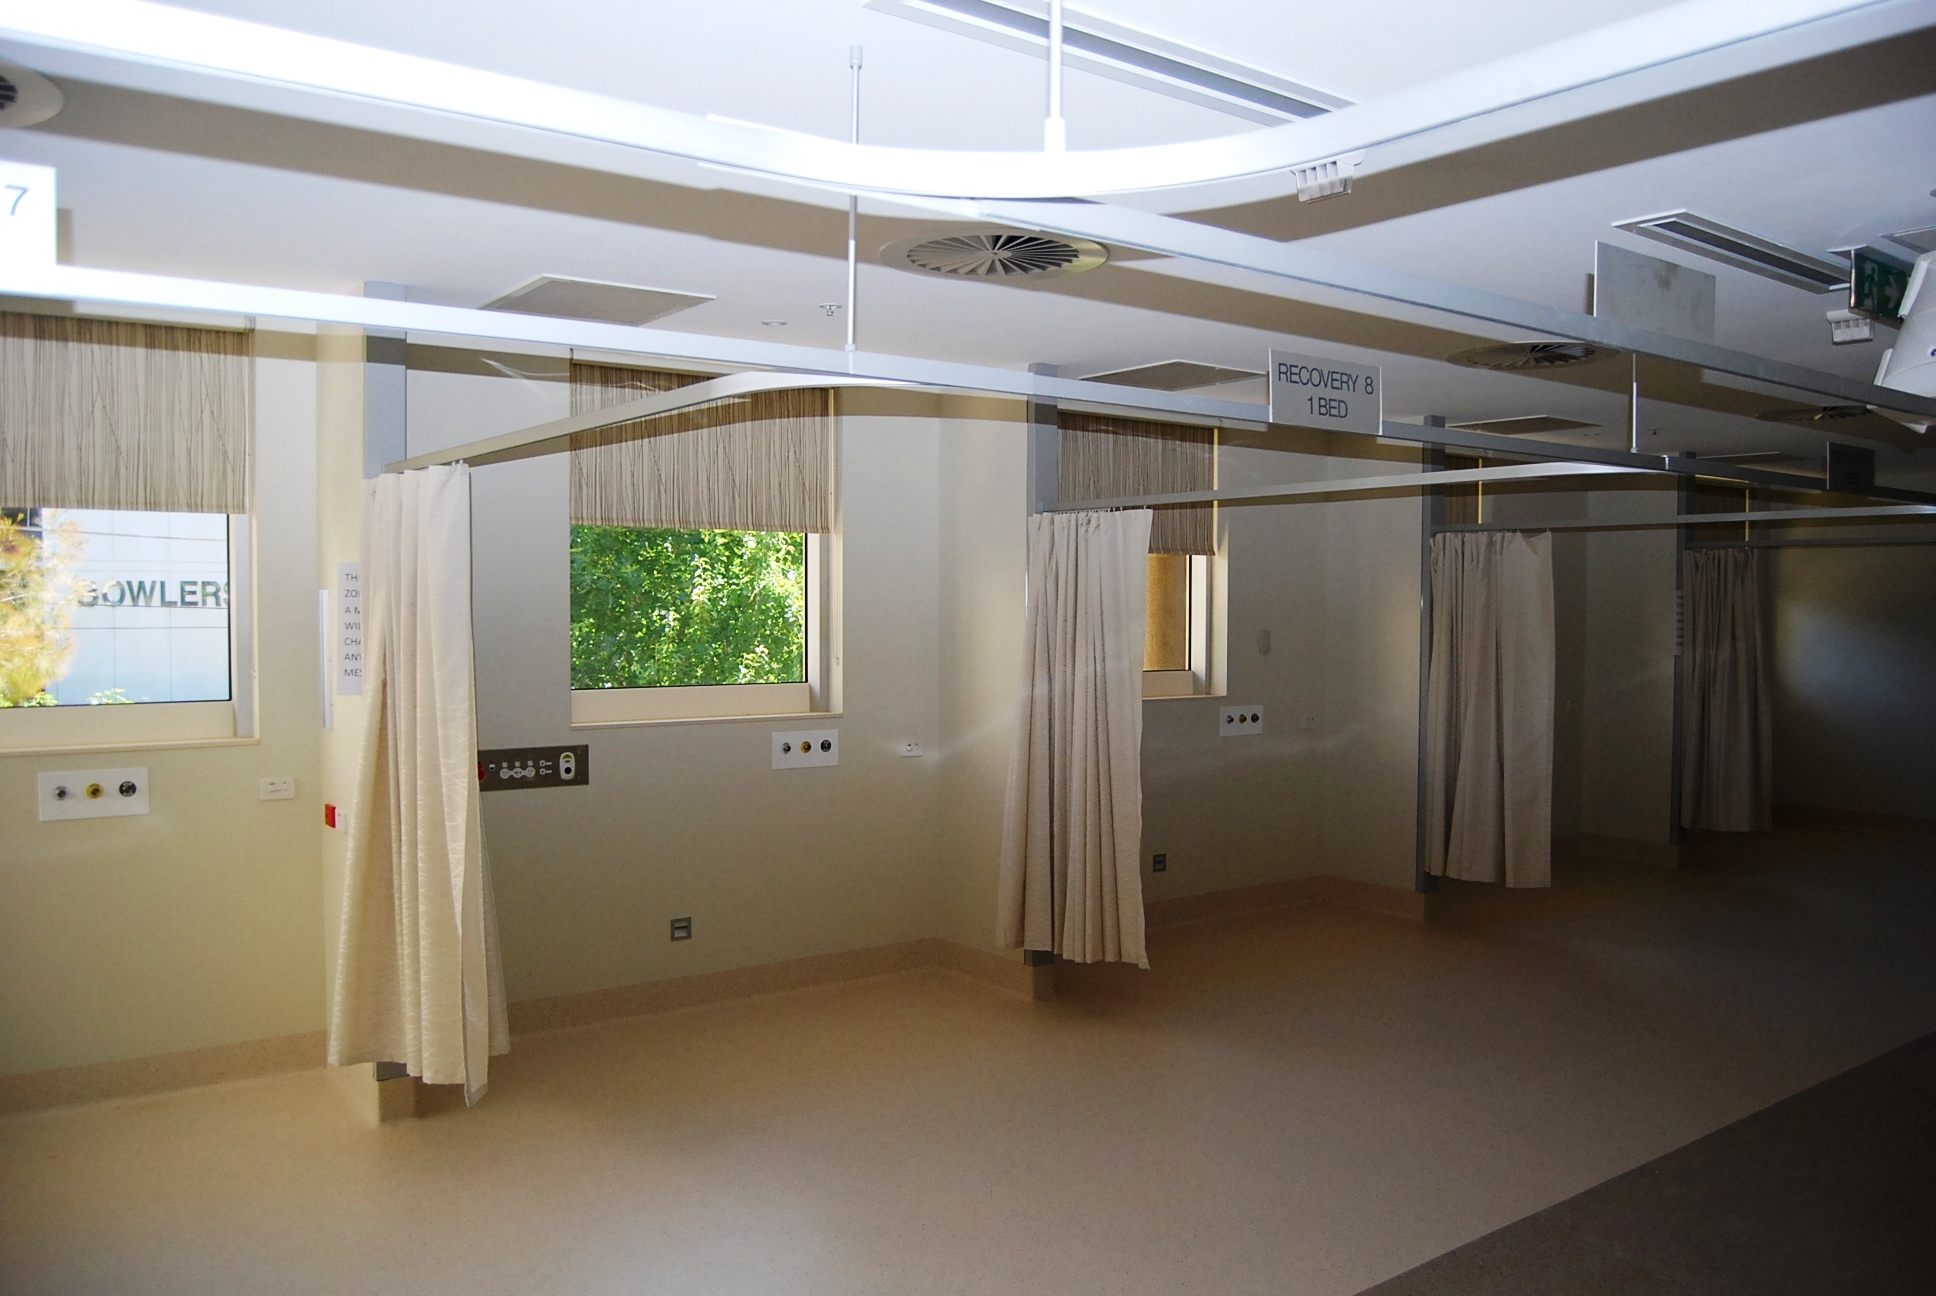 Office cubicle curtains - Office Cubicle Curtains Privacy Office Cubicle Curtains Bed Screen Privacy Hospital Tracking Country Wide Concepts